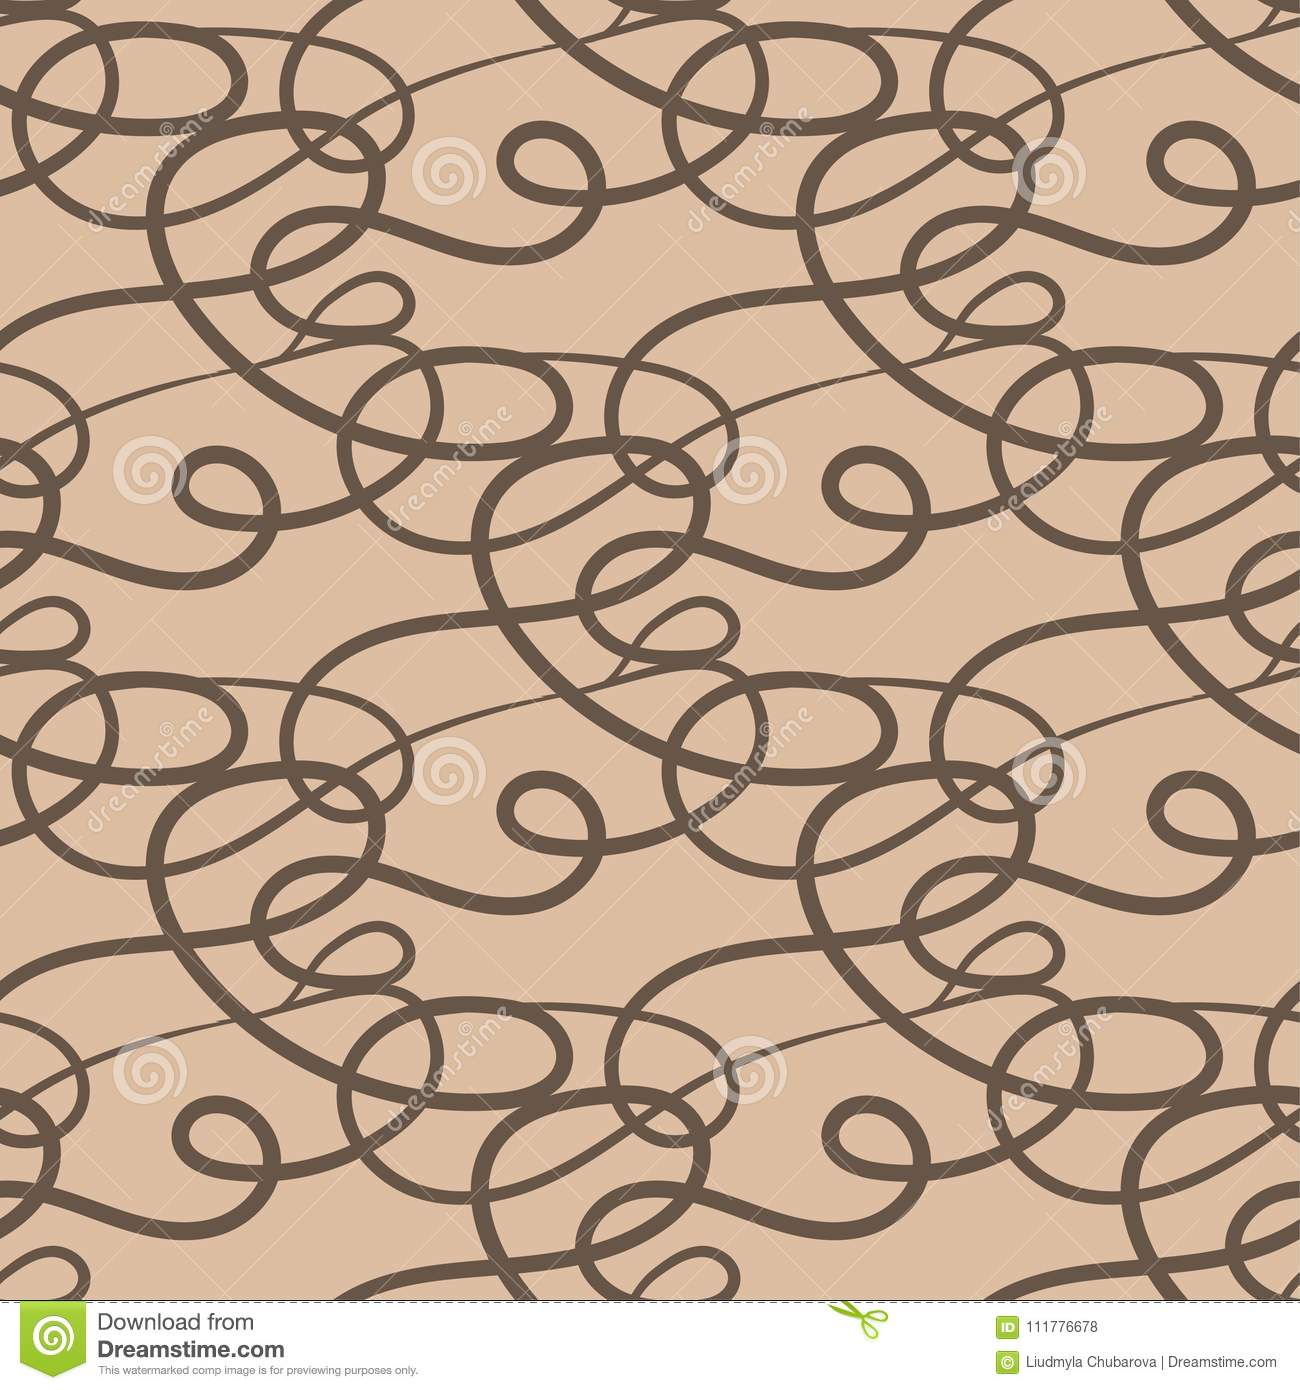 Abstract seamless pattern. Beige and brown background for textile and fabrics